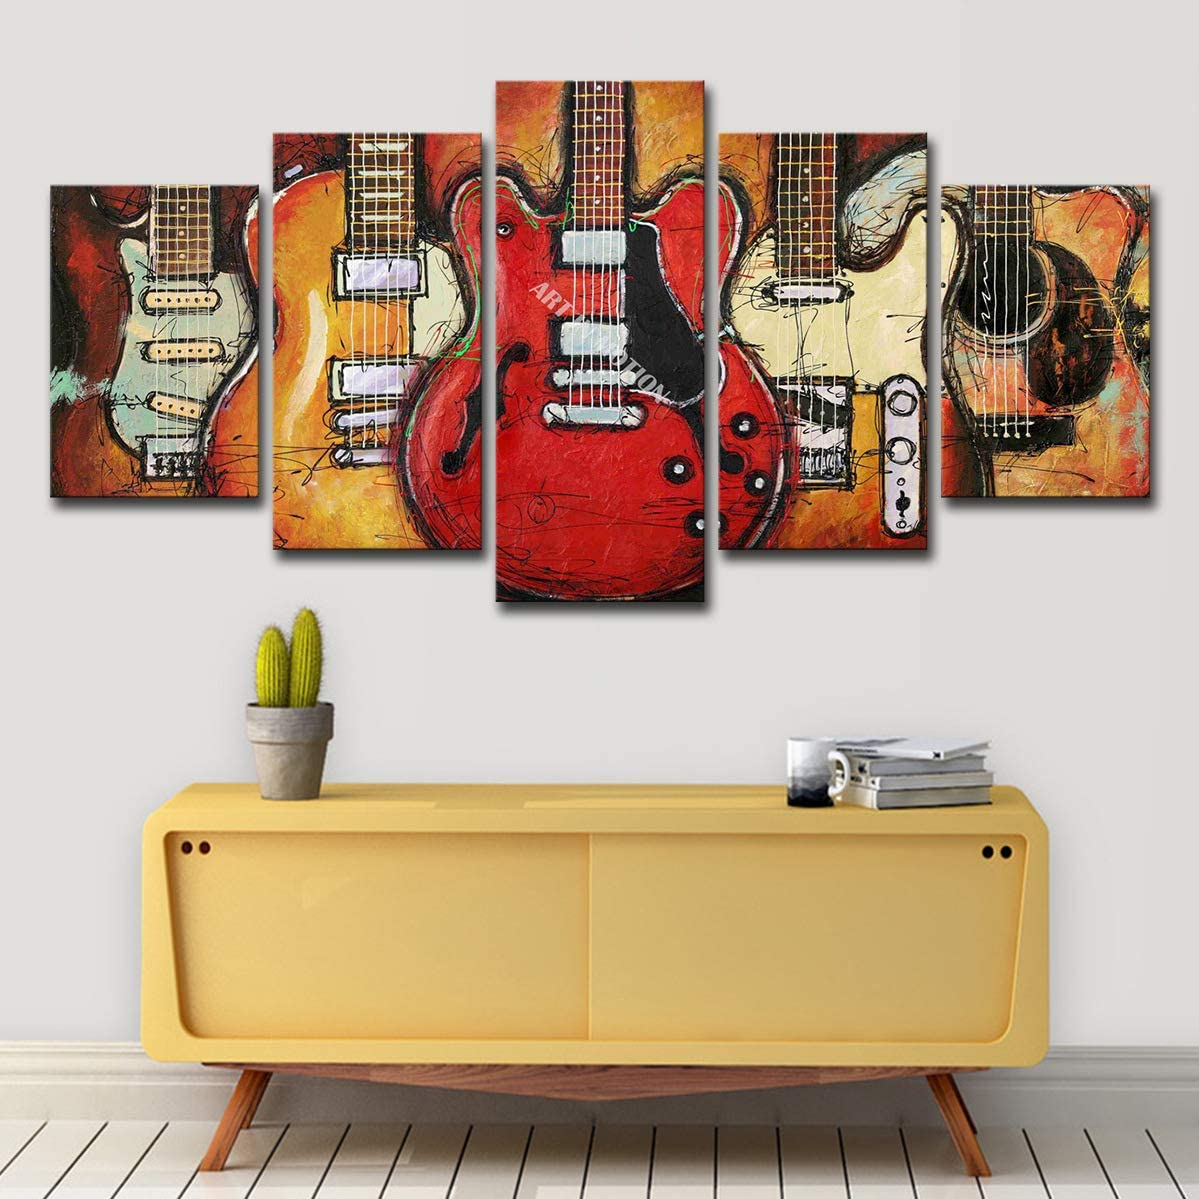 Amazon Com Study Room Music Room Abstract Guitar Comic Music 50cm Home Living Room Decoration Painting 5 Panel With Frame Can Be Directly Suspended Posters Prints